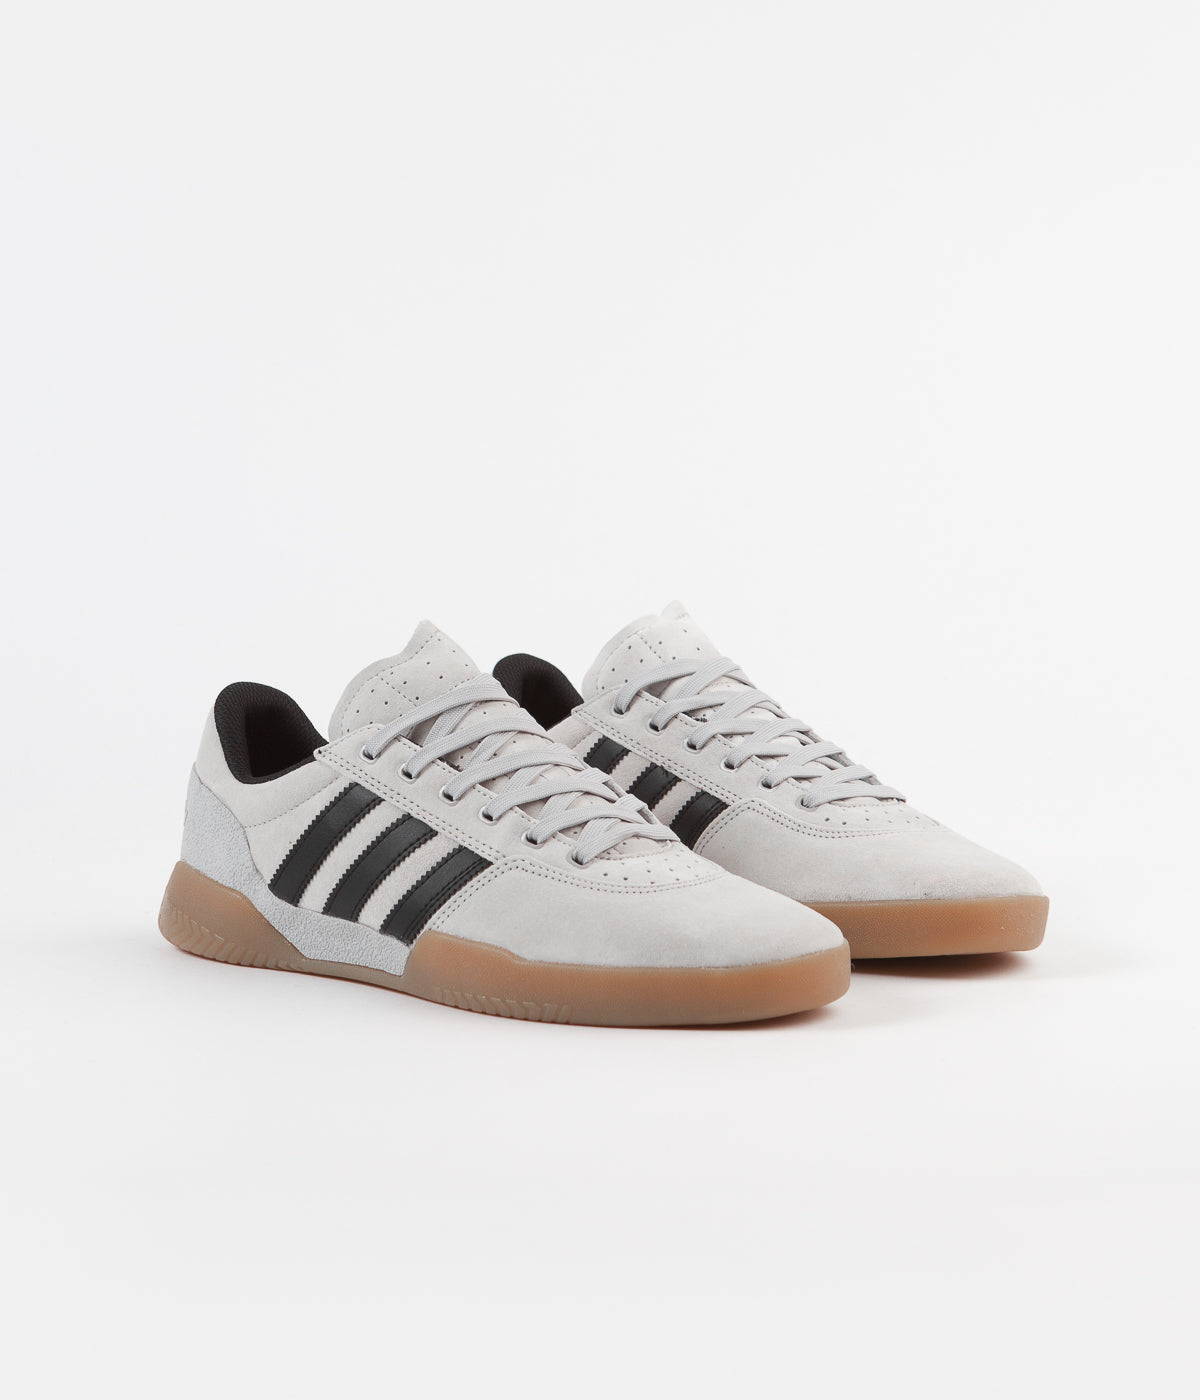 Adidas City Cup Shoes - Grey Two / Core Black / Gum4